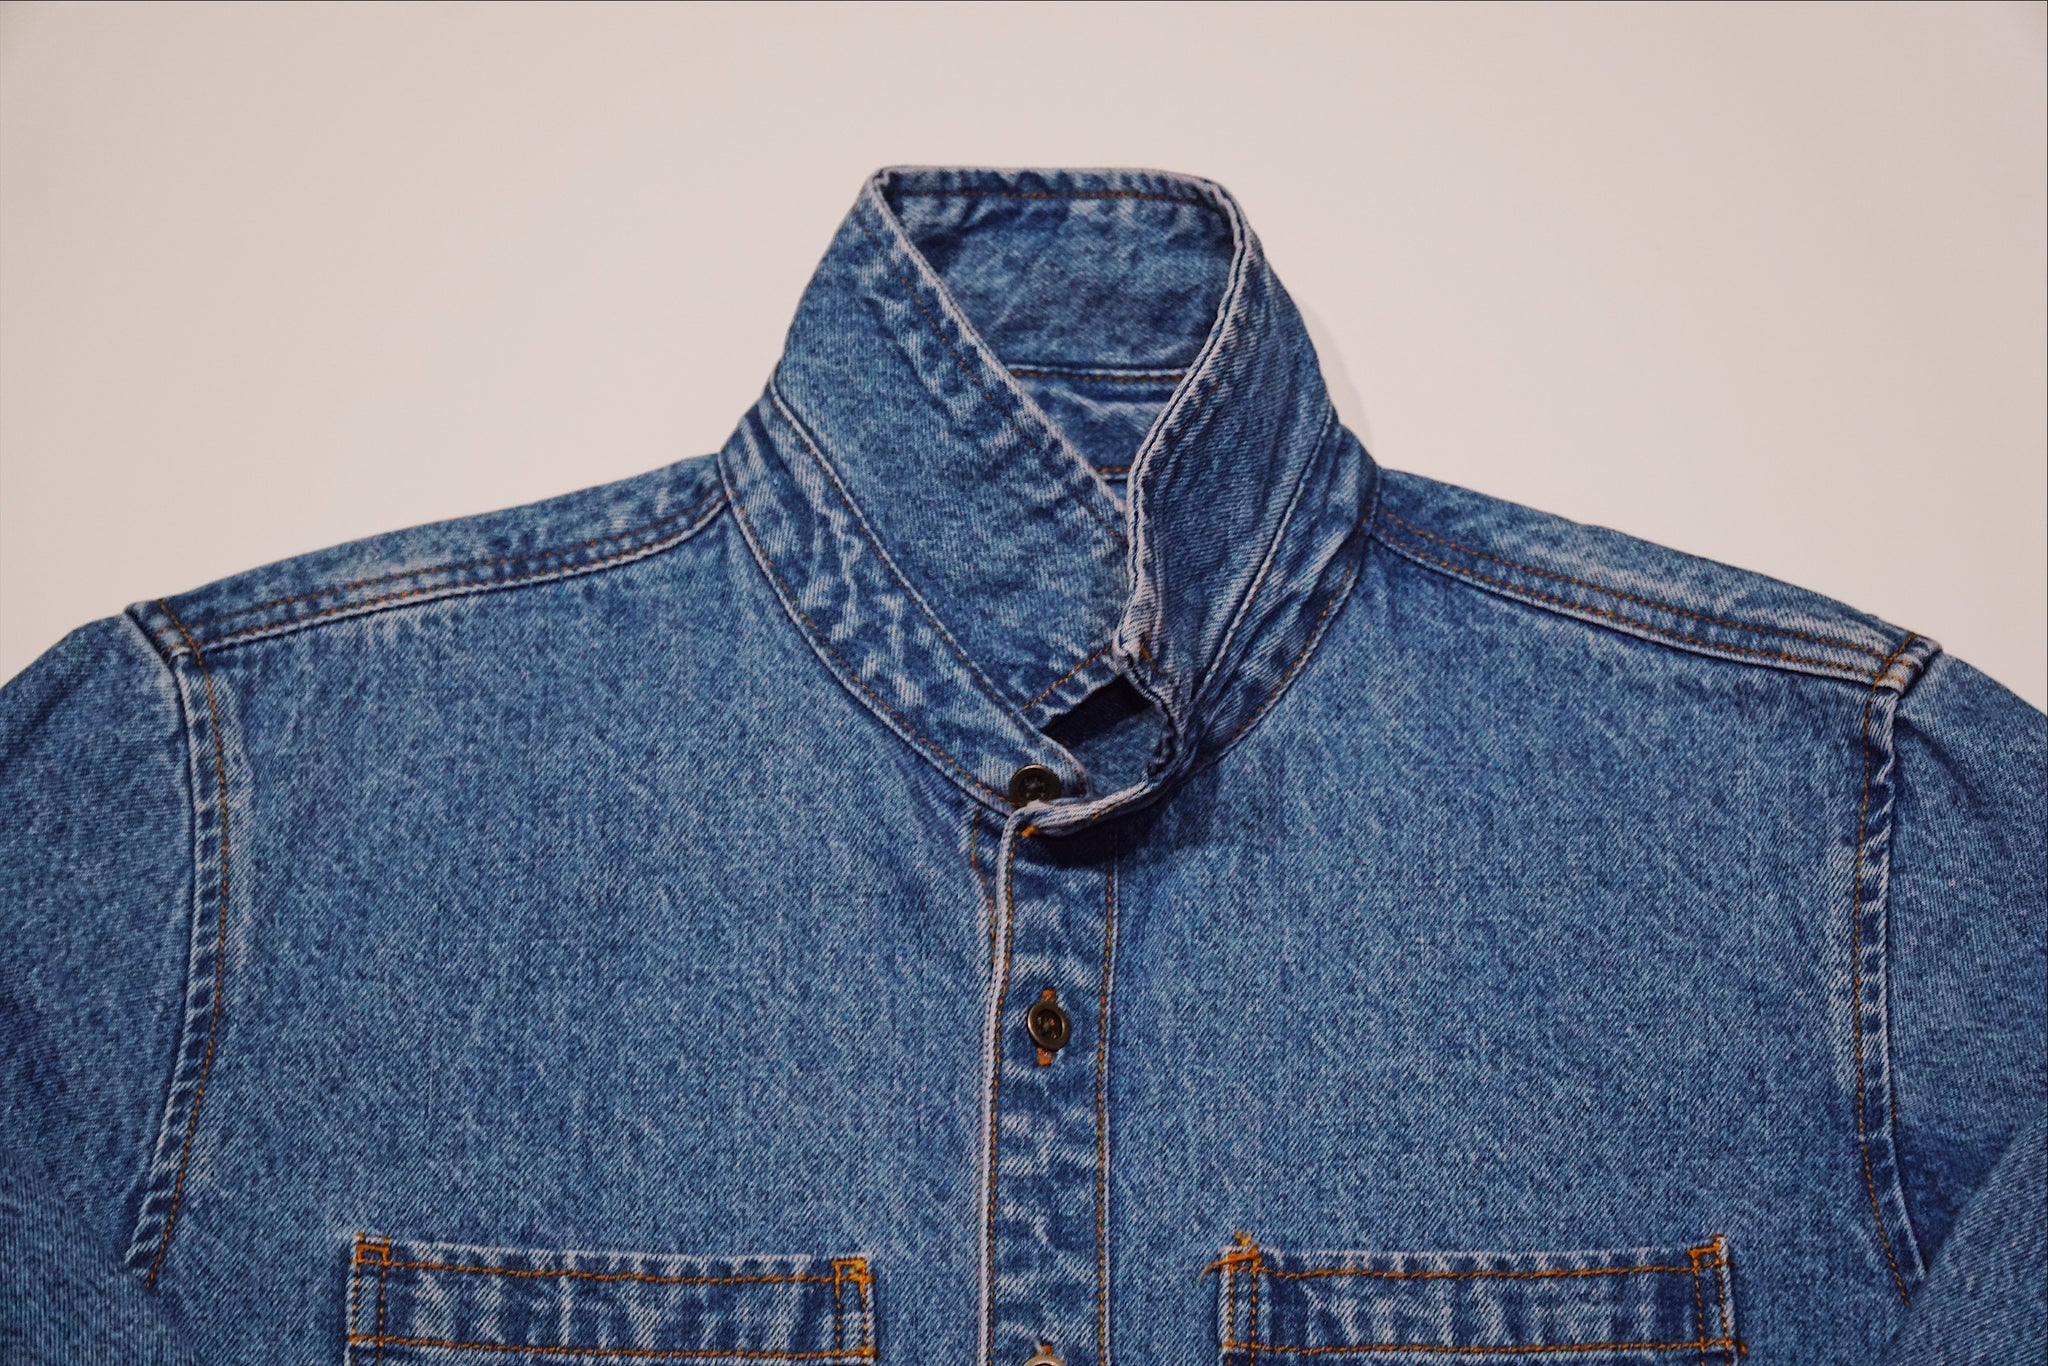 RAW SHELL TOP - DENIM BLUE